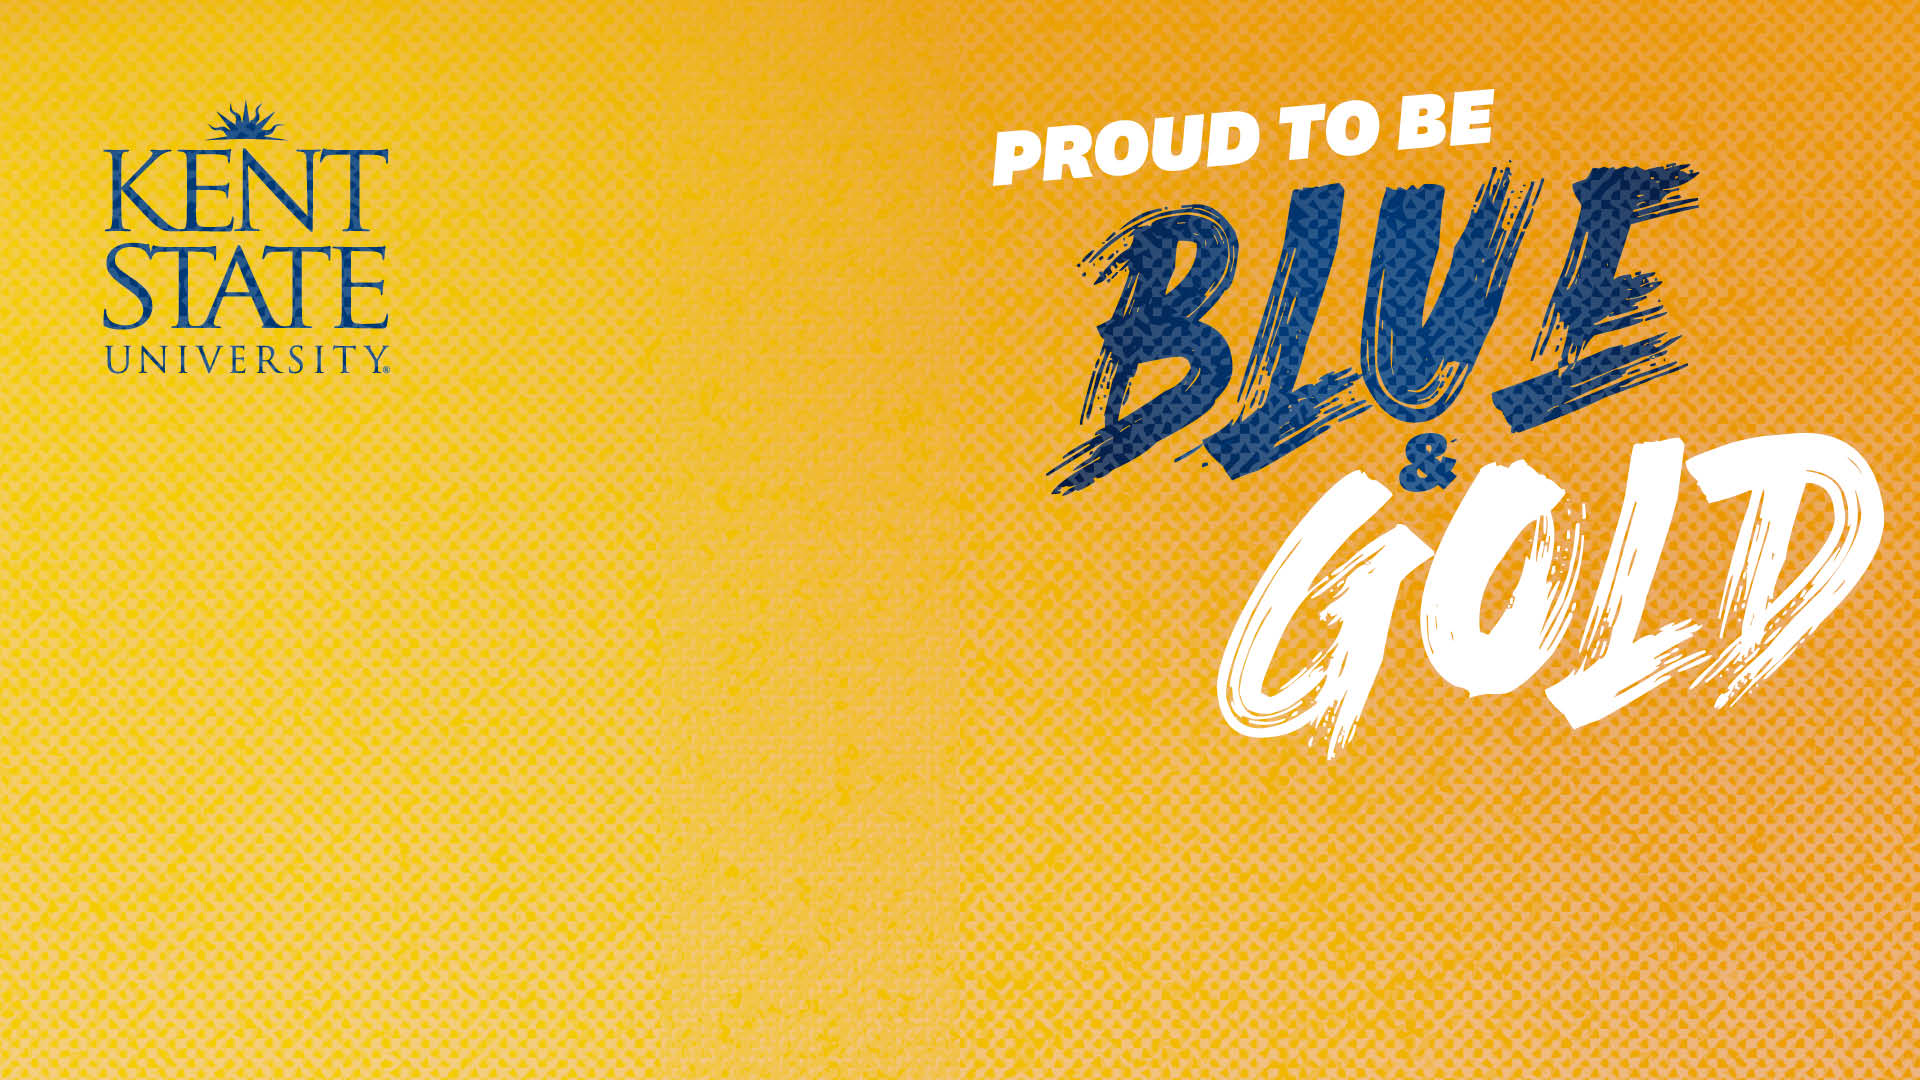 Download backgrounds for Google Meet, Zoom and Microsoft Teams with a yellow background, Kent State Logo and Blue and Gold pride.